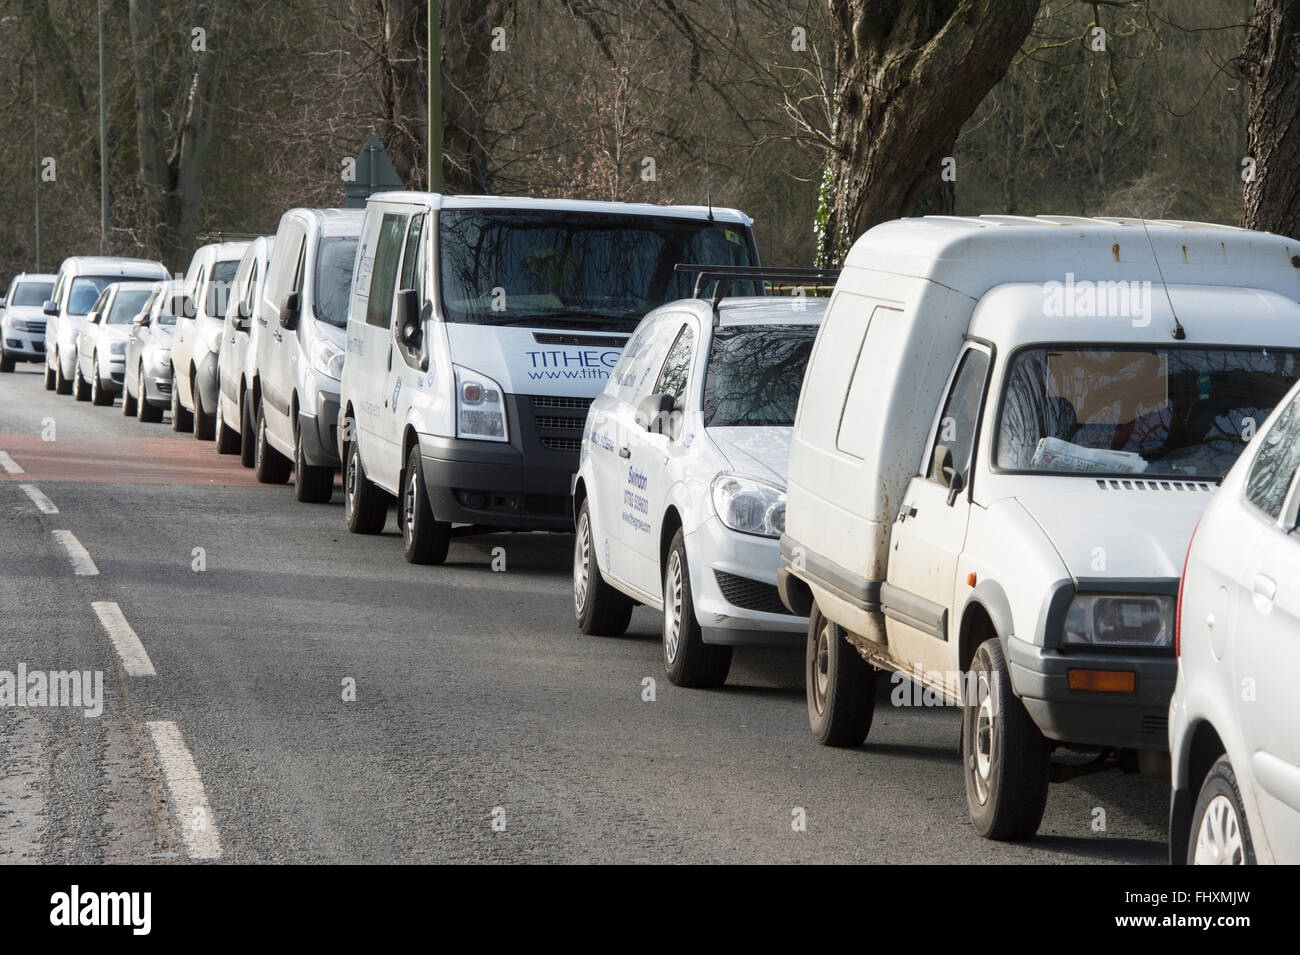 cd5ed85621 White contractors vans parked outside a building site on the road in  Chipping Norton. Oxfordshire